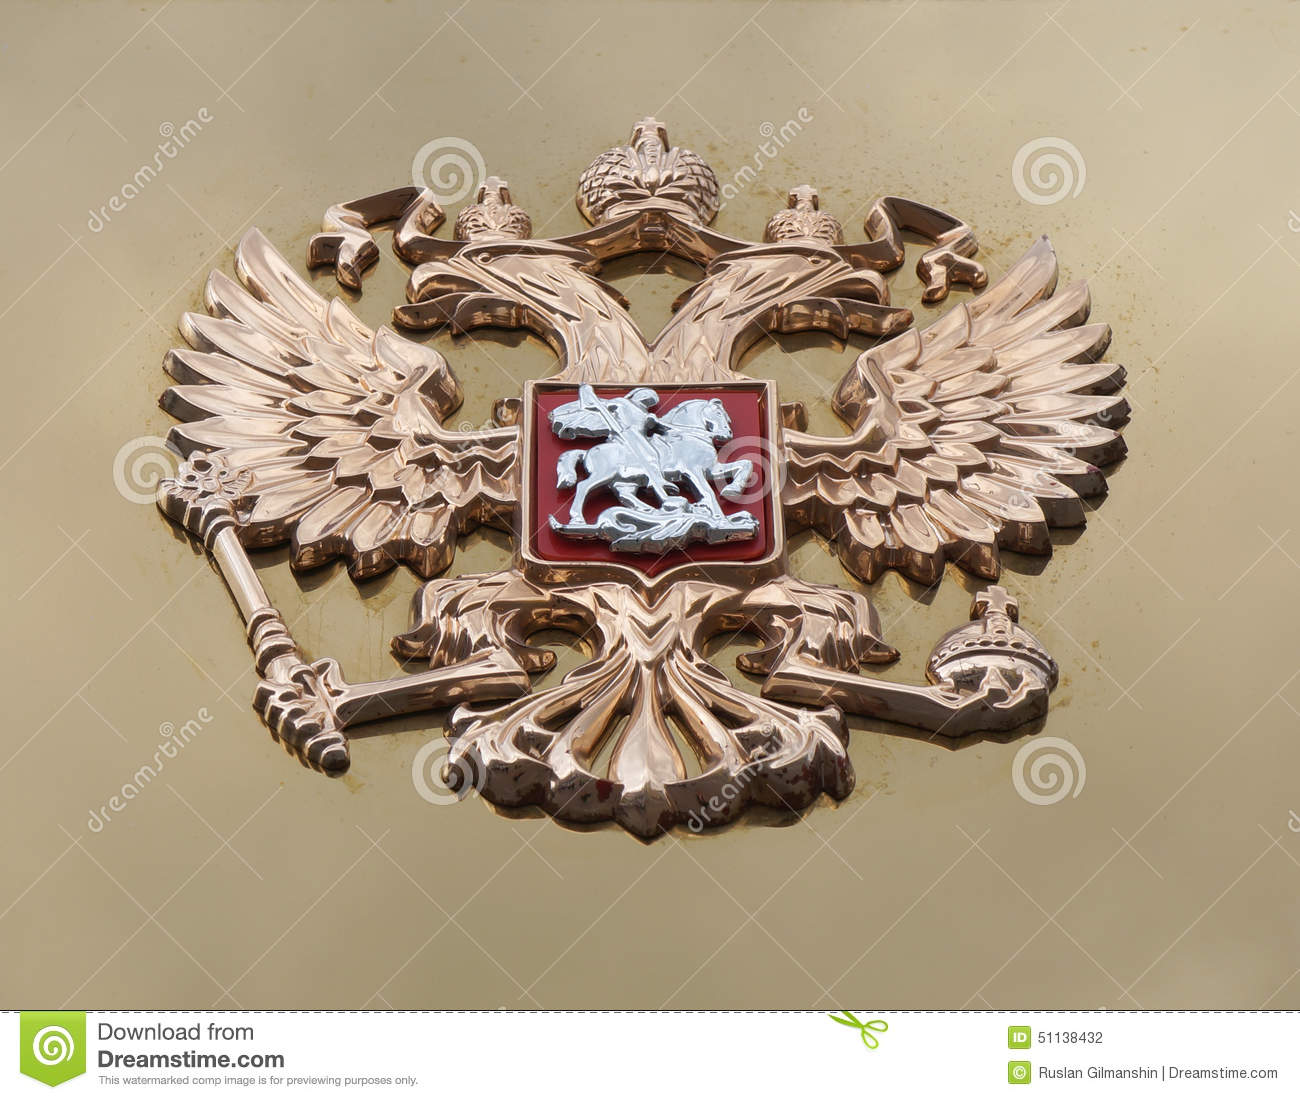 State Symbols Of Russias Emblem Of The Double Headed Eagle Stock